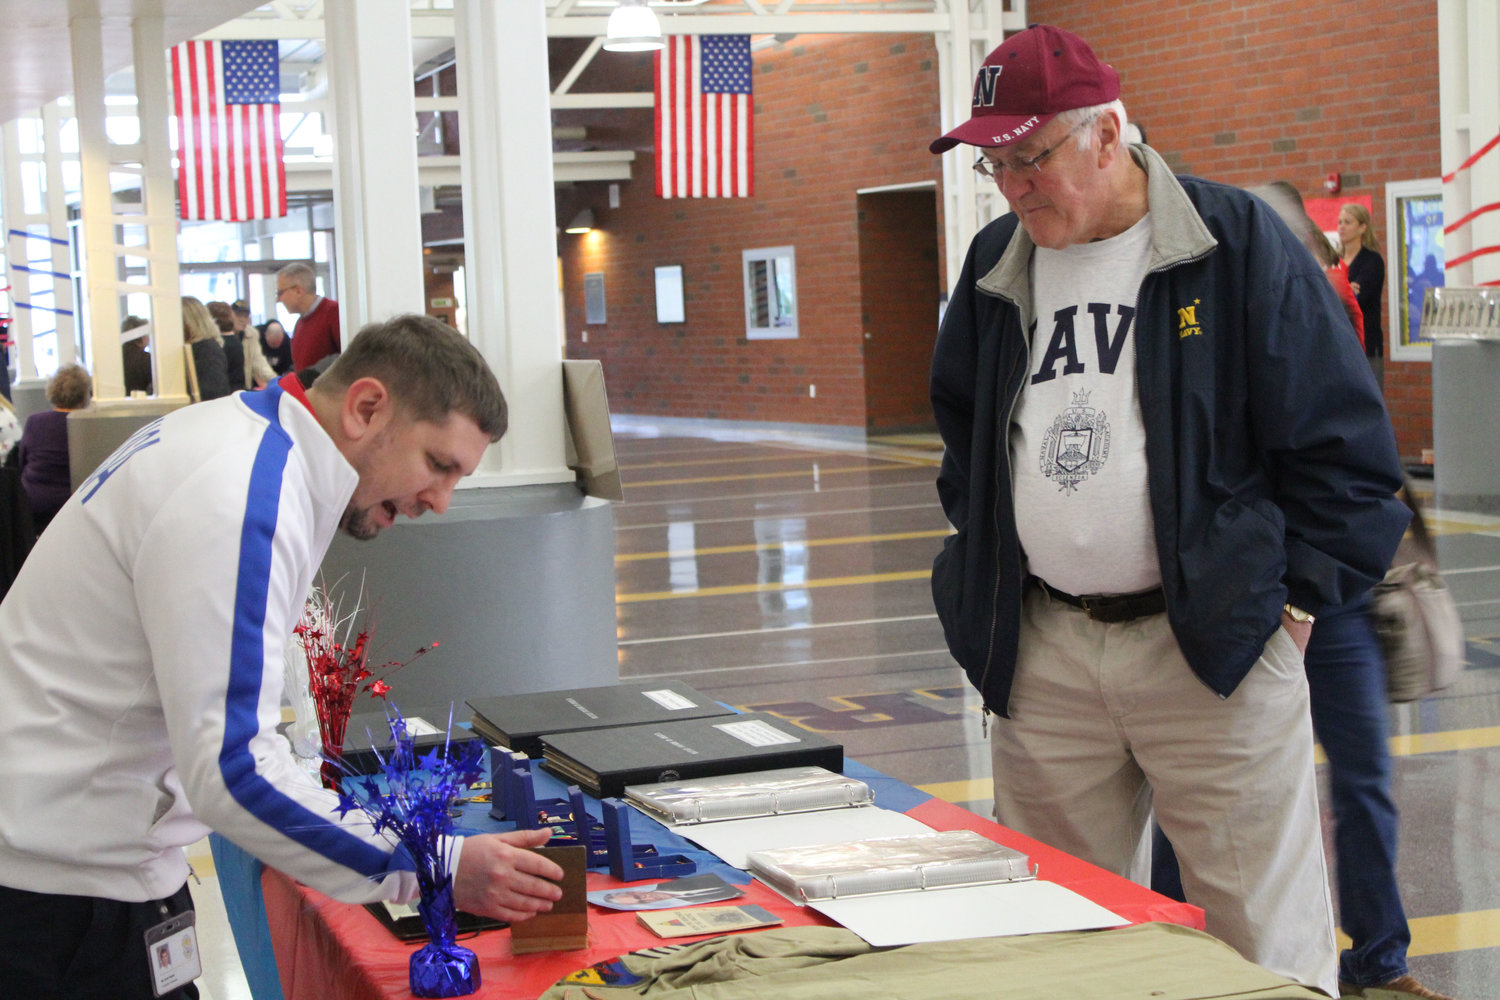 Harold Pomraning looks at Zach Kepler's display at MAMS on Nov. 9 of his great-uncle's medals, letters, uniforms and pictures from his time in the service.